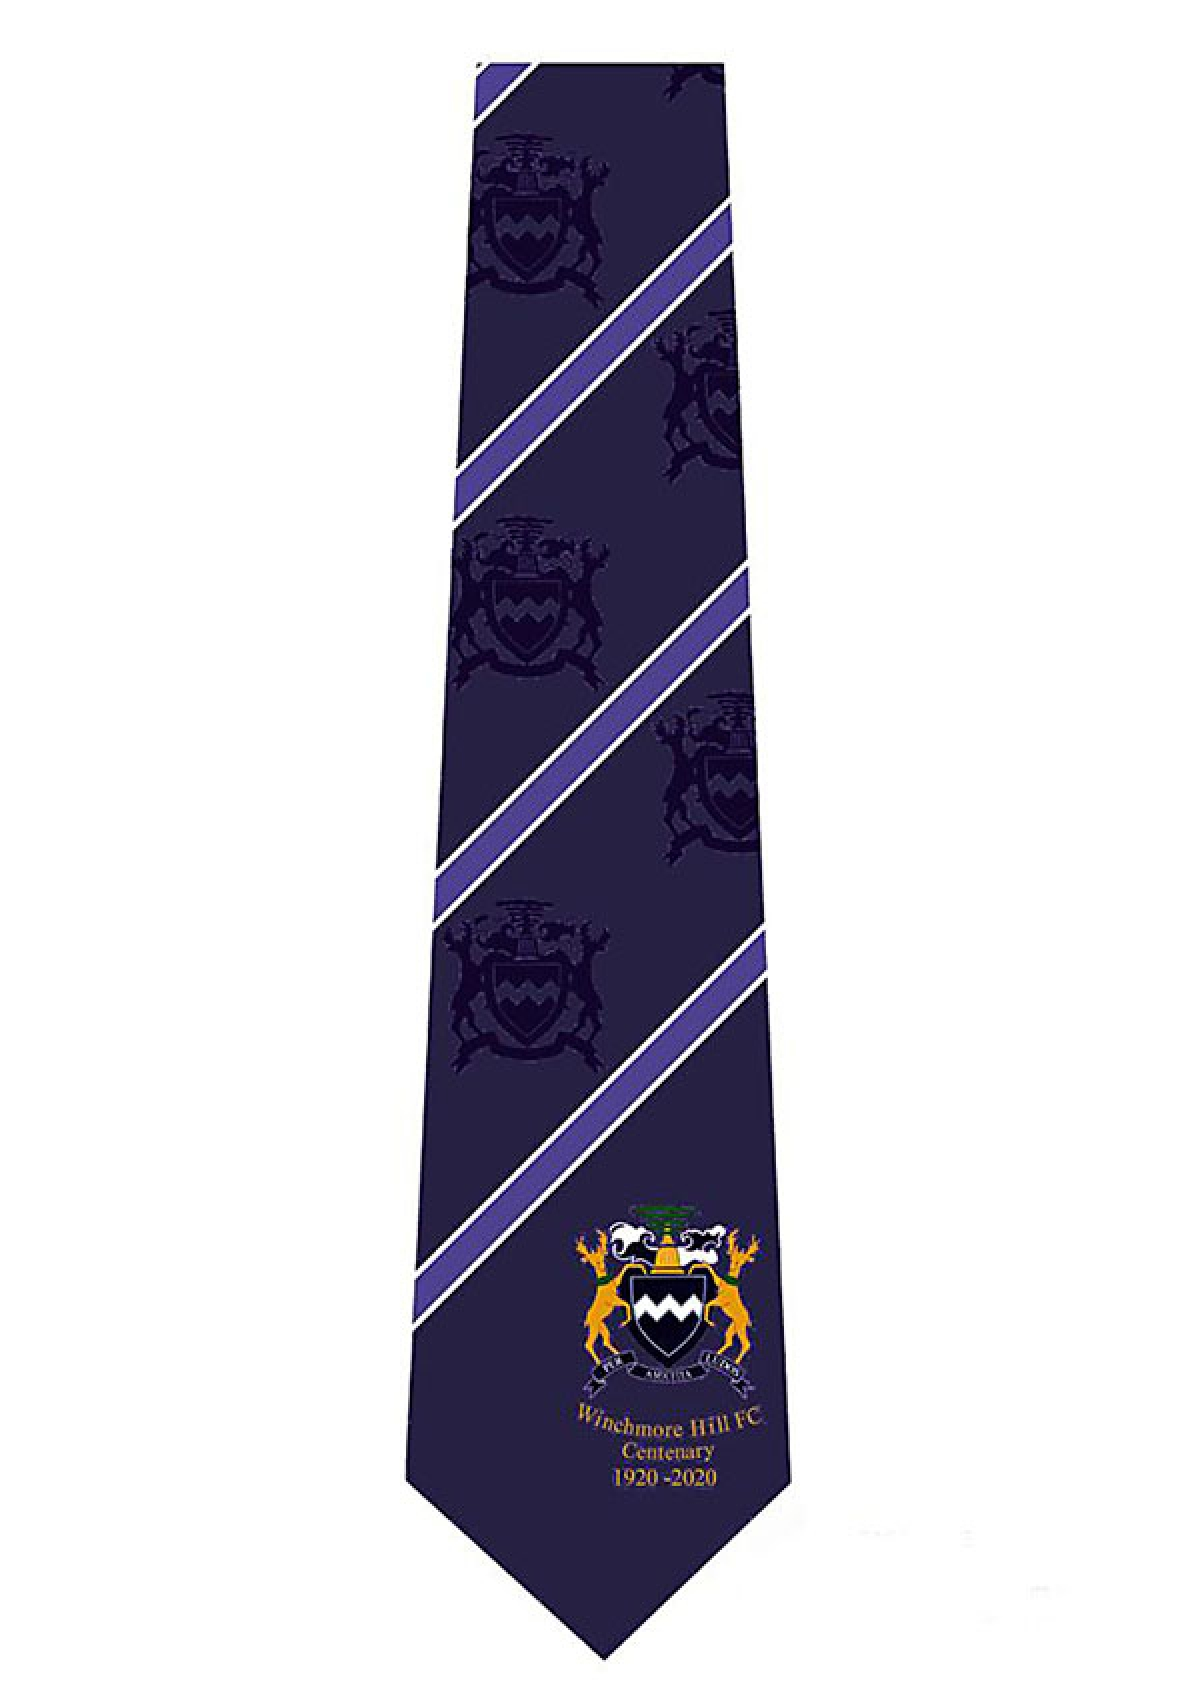 Centenary Ties Available Now